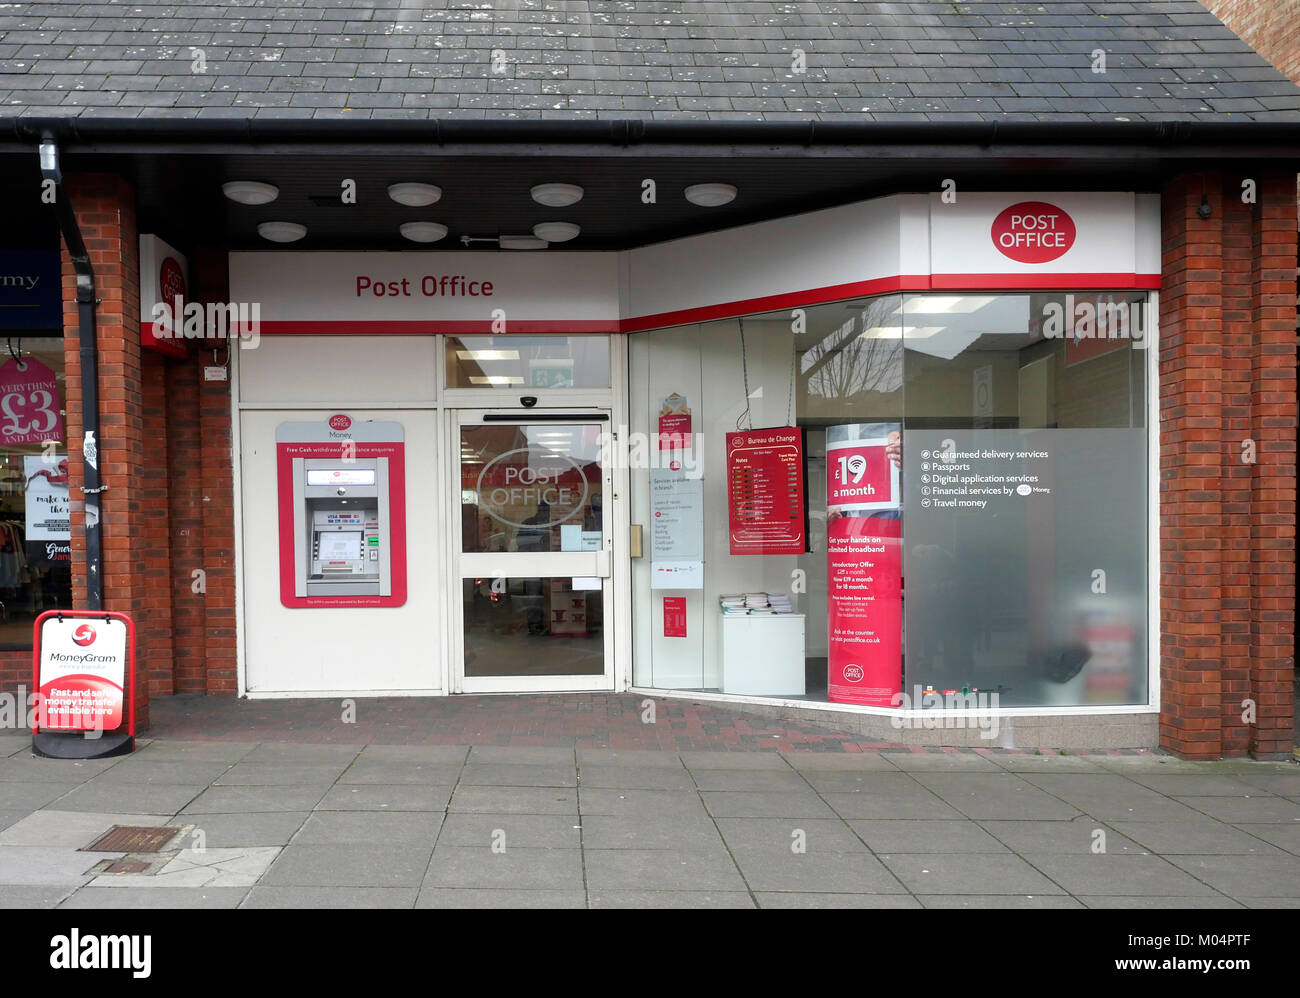 Post Office in High Street, Cosham, Portsmouth, Hampshire, England, UK Stock Photo